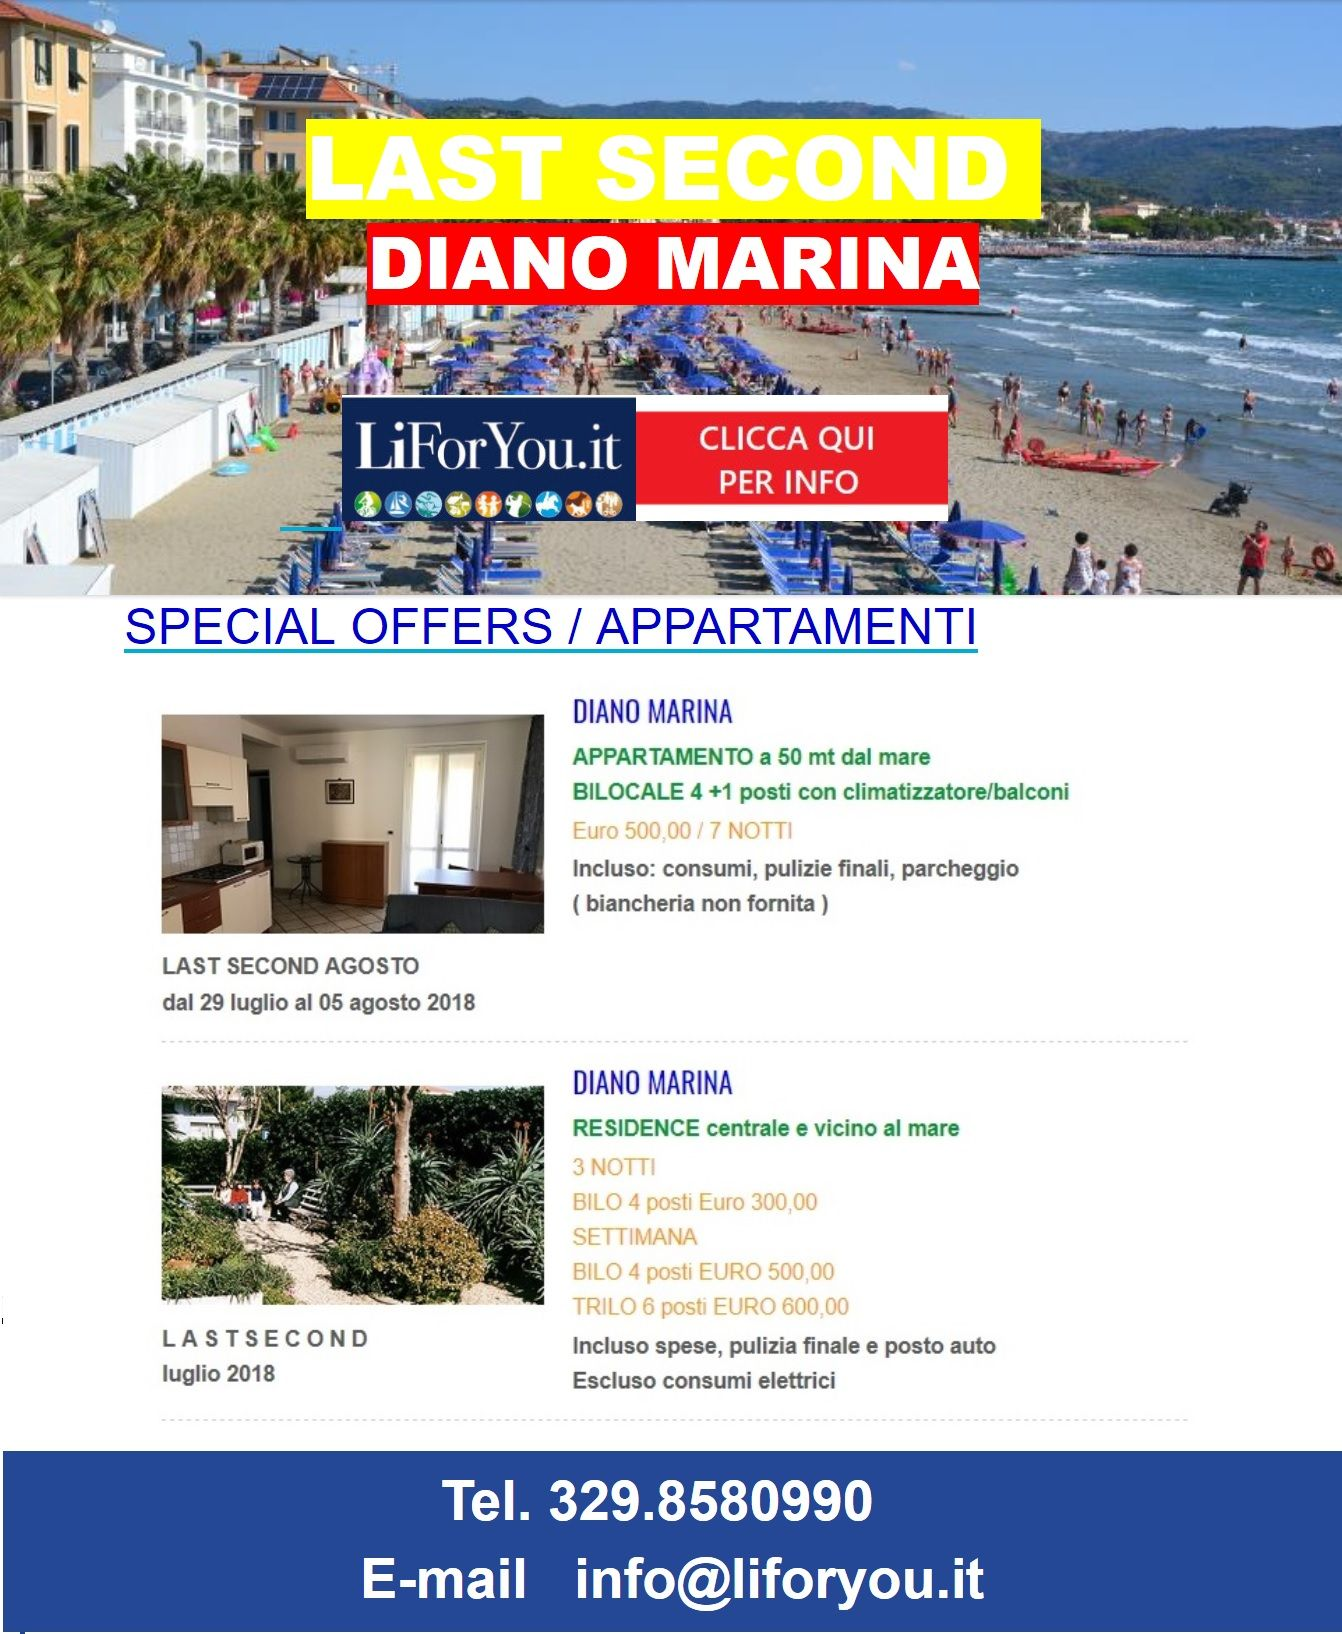 Apartment Offer Diano Marina Book Your Favorite Apartment